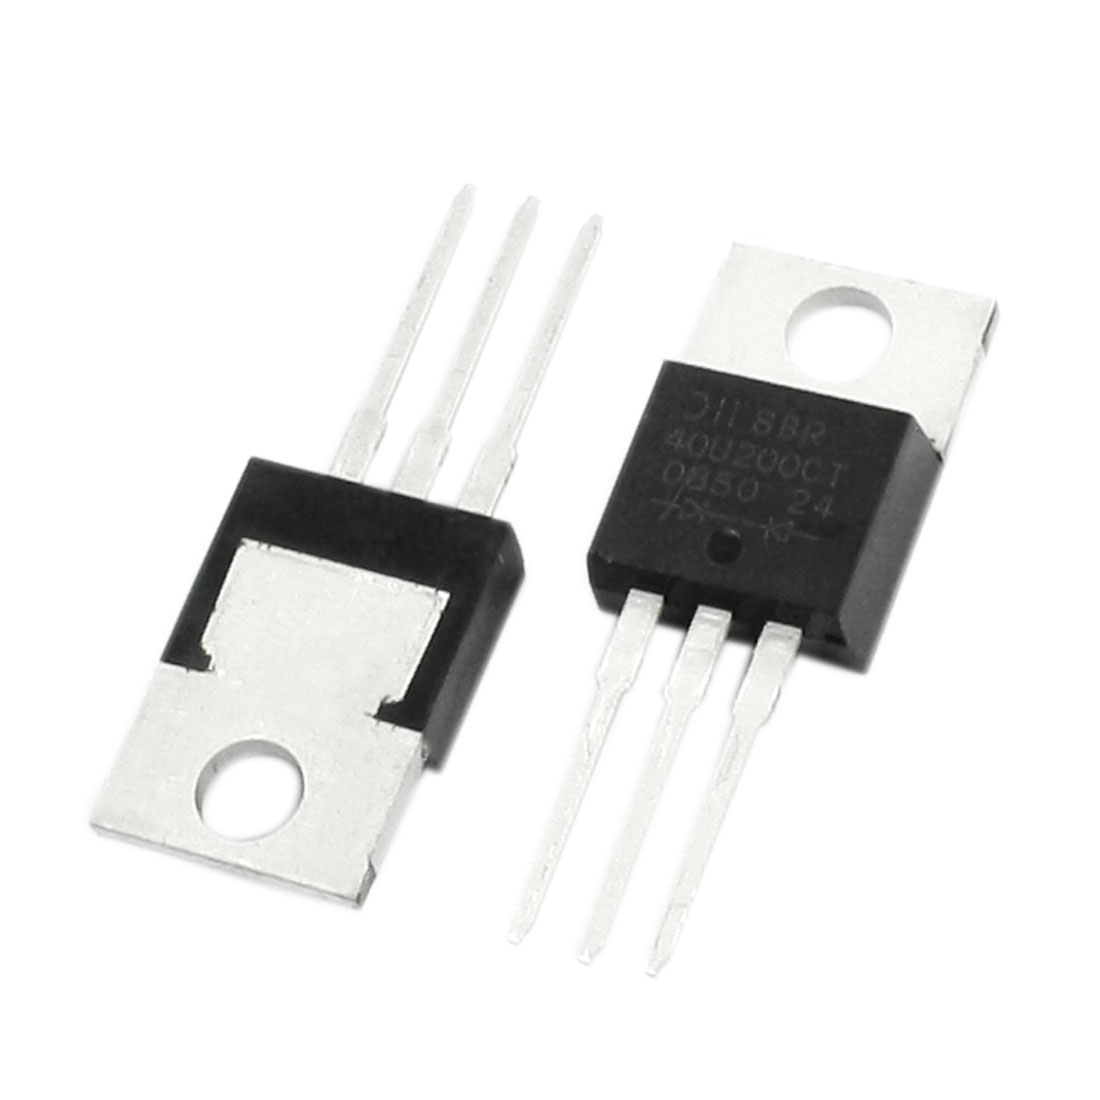 2Pcs SBR40U120CT 40A 120V Electronic 3 Terminals Through Hole Mounting Dual High-Voltage Power Schottky Barrier Rectifier Diode